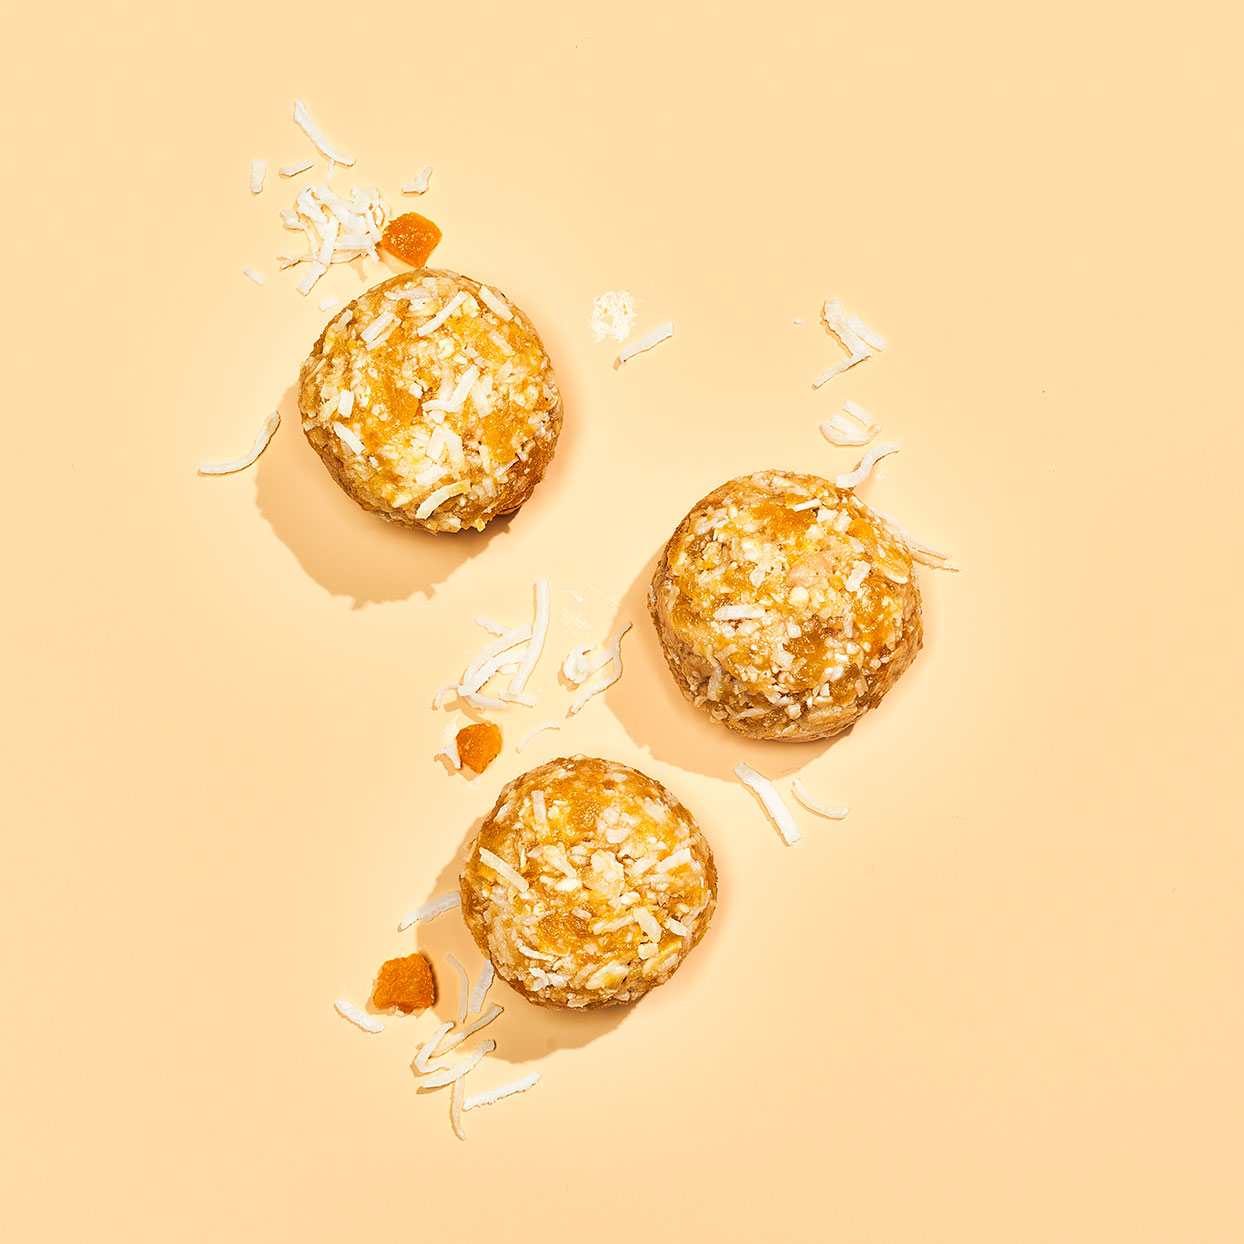 This easy energy ball uses natural ingredients to give you a quick bite of energy when you need it. Dried apricots and honey hold together the coconut and oats, while ginger and tahini deepen the sweet flavors. Ready in just 25 minutes, you can have these as a grab-and-go breakfast, afternoon snack or sweet treat after dinner.